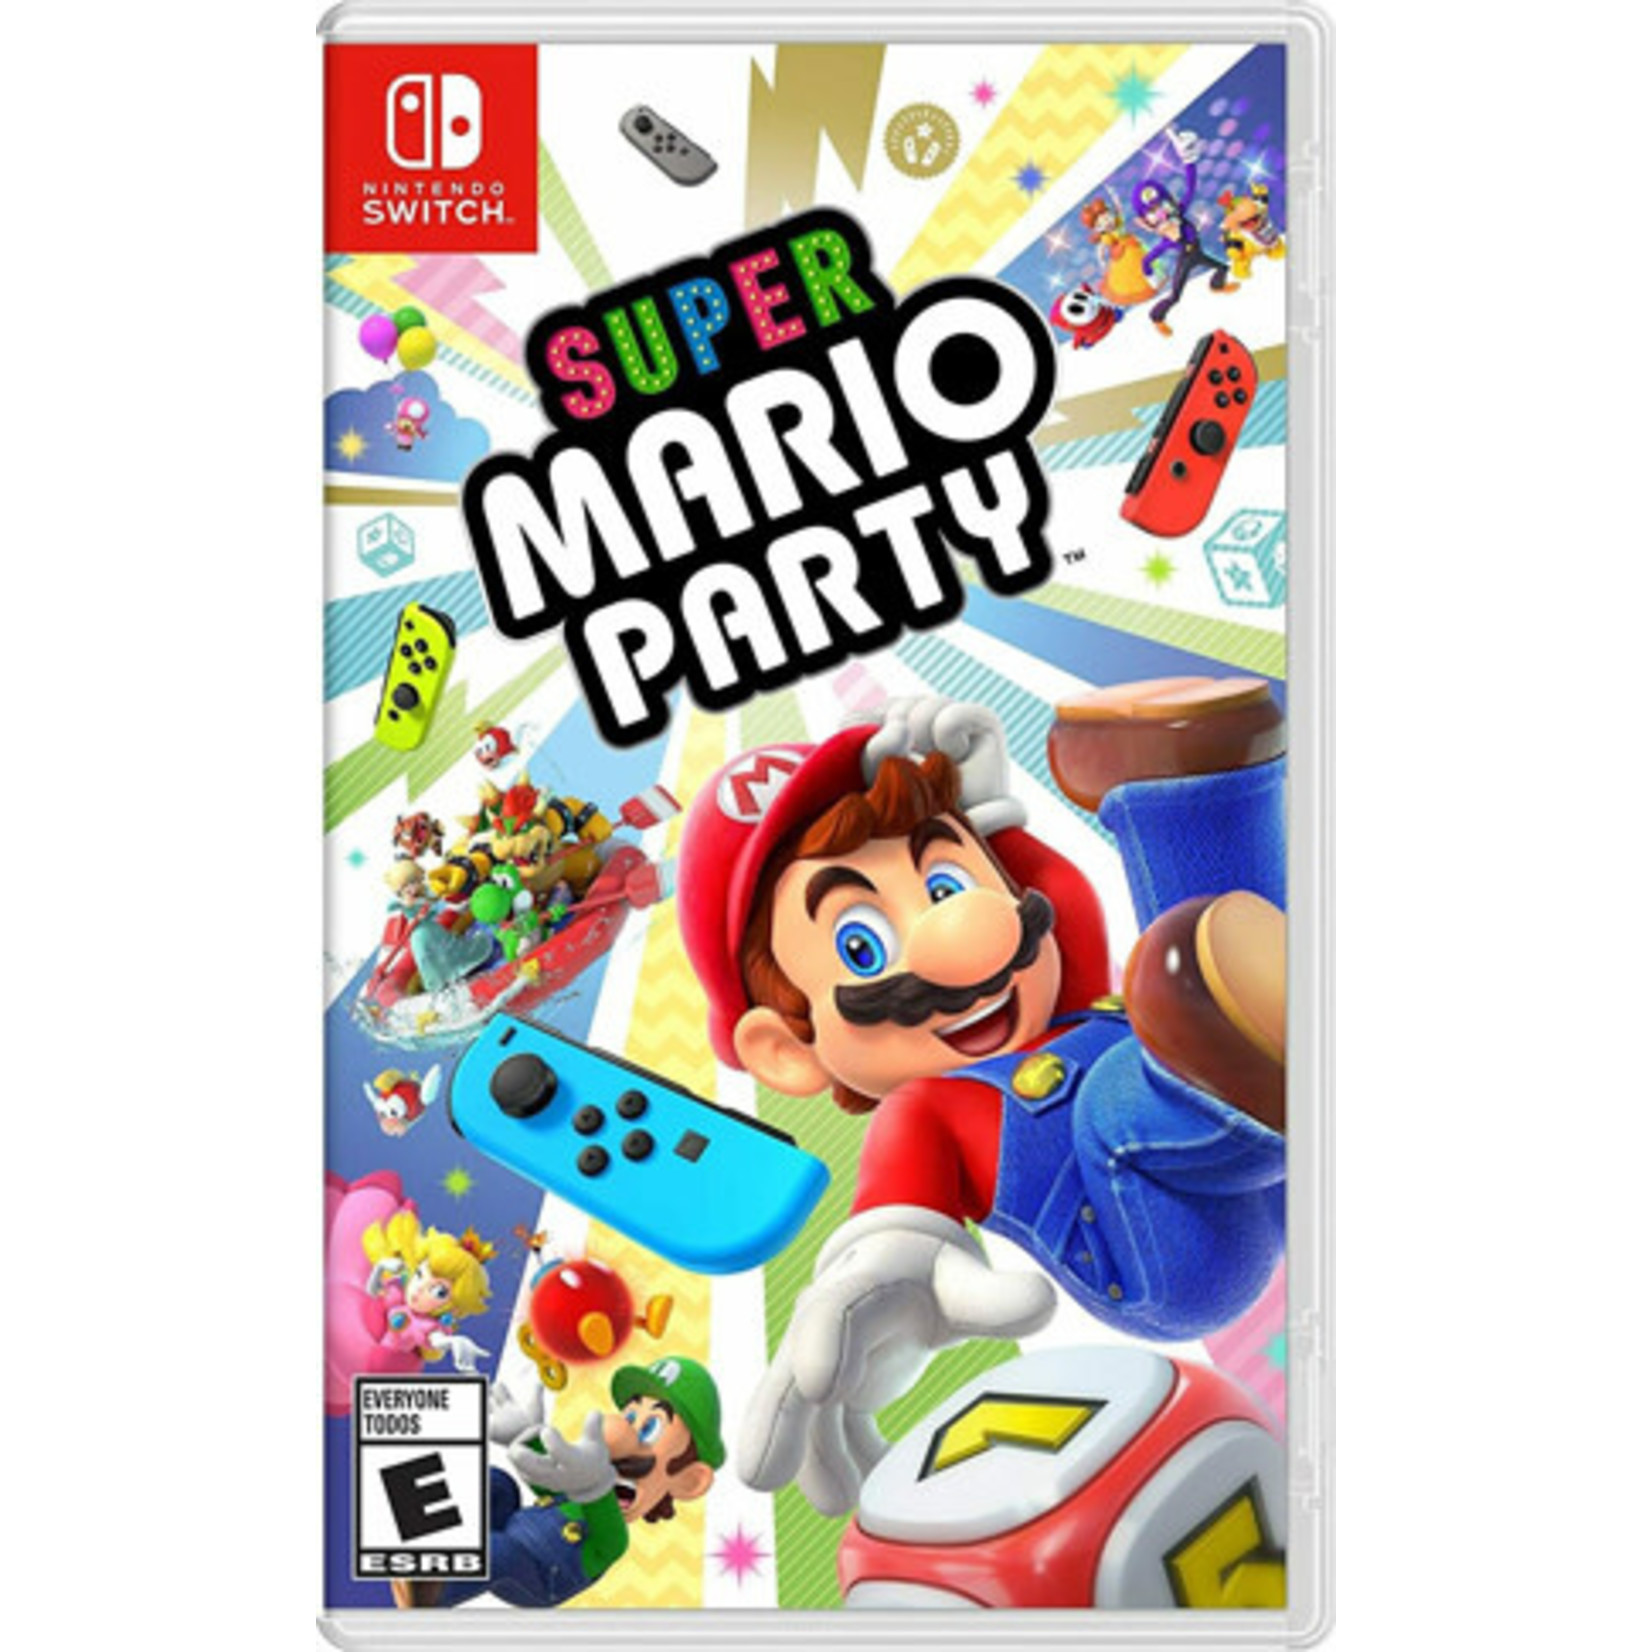 SWITCH-Super Mario Party